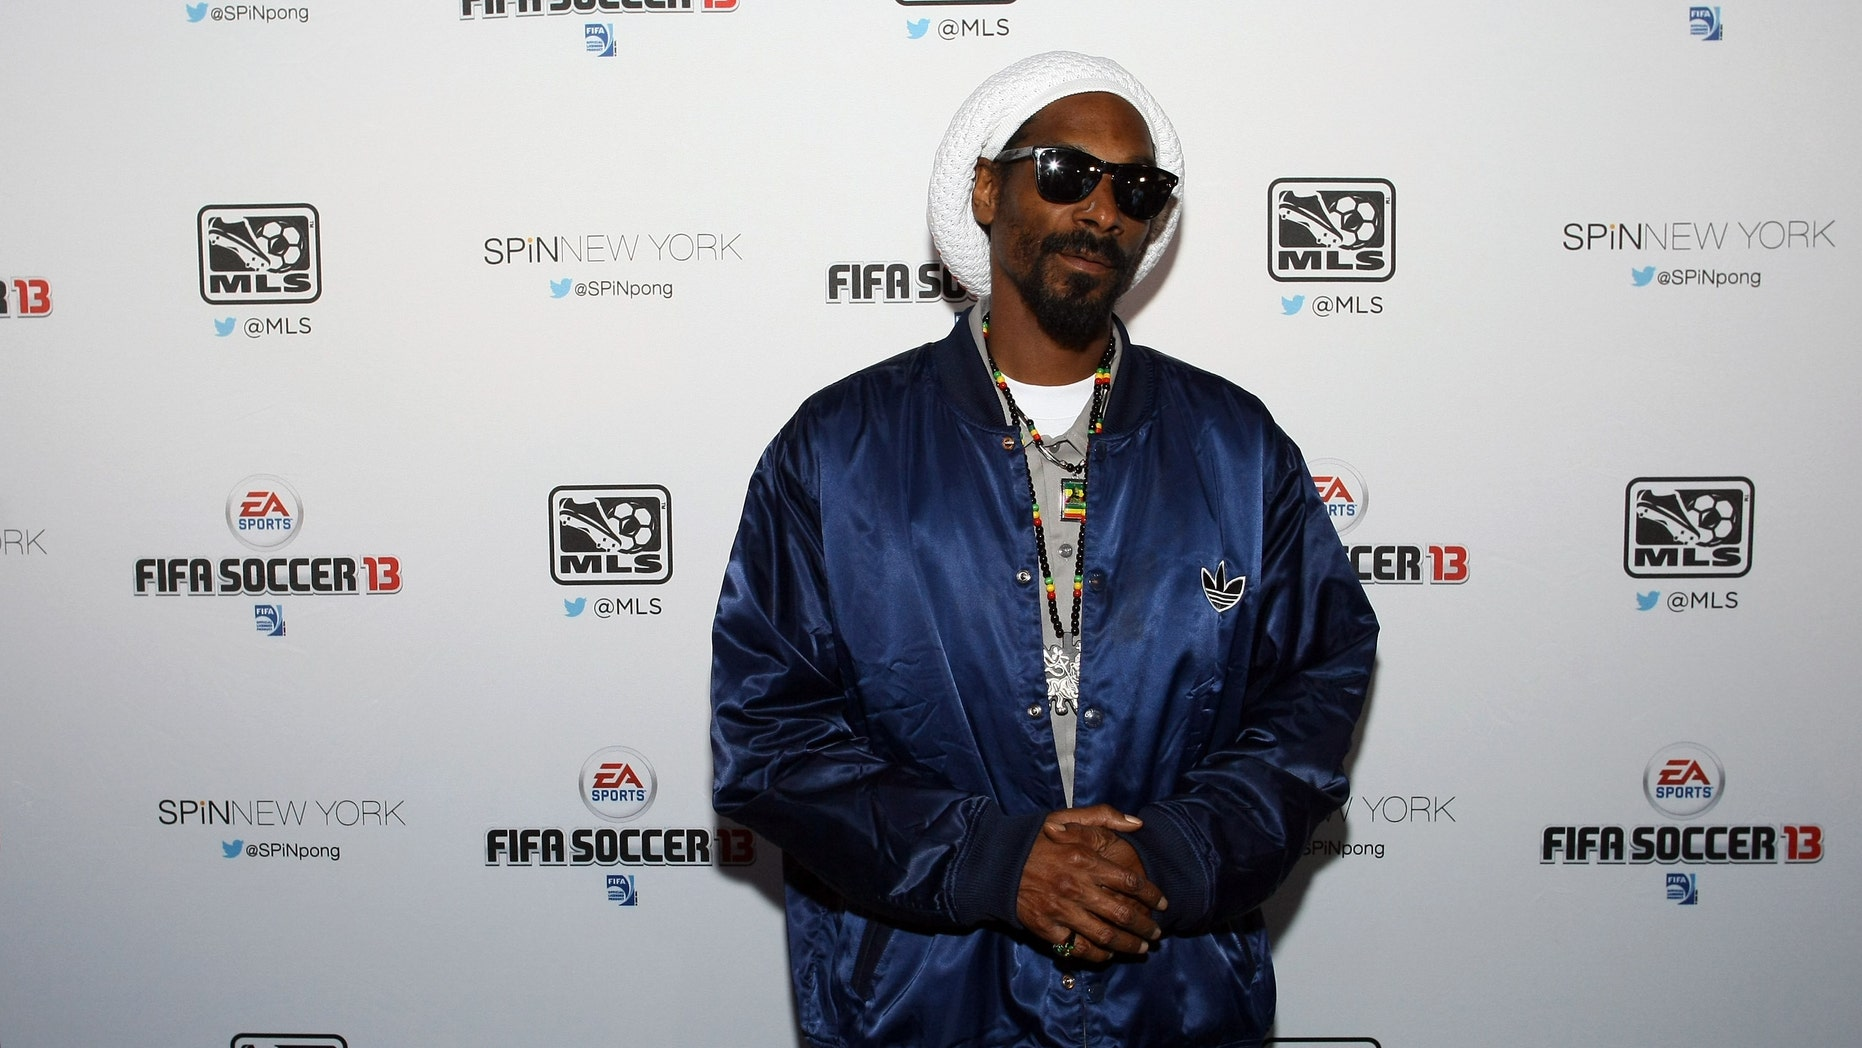 Snoop Lion attends the FIFA Soccer 13 launch tournament at SPiN New York on September 24, 2012 in New York City.  (Photo by Neilson Barnard/Getty Images)